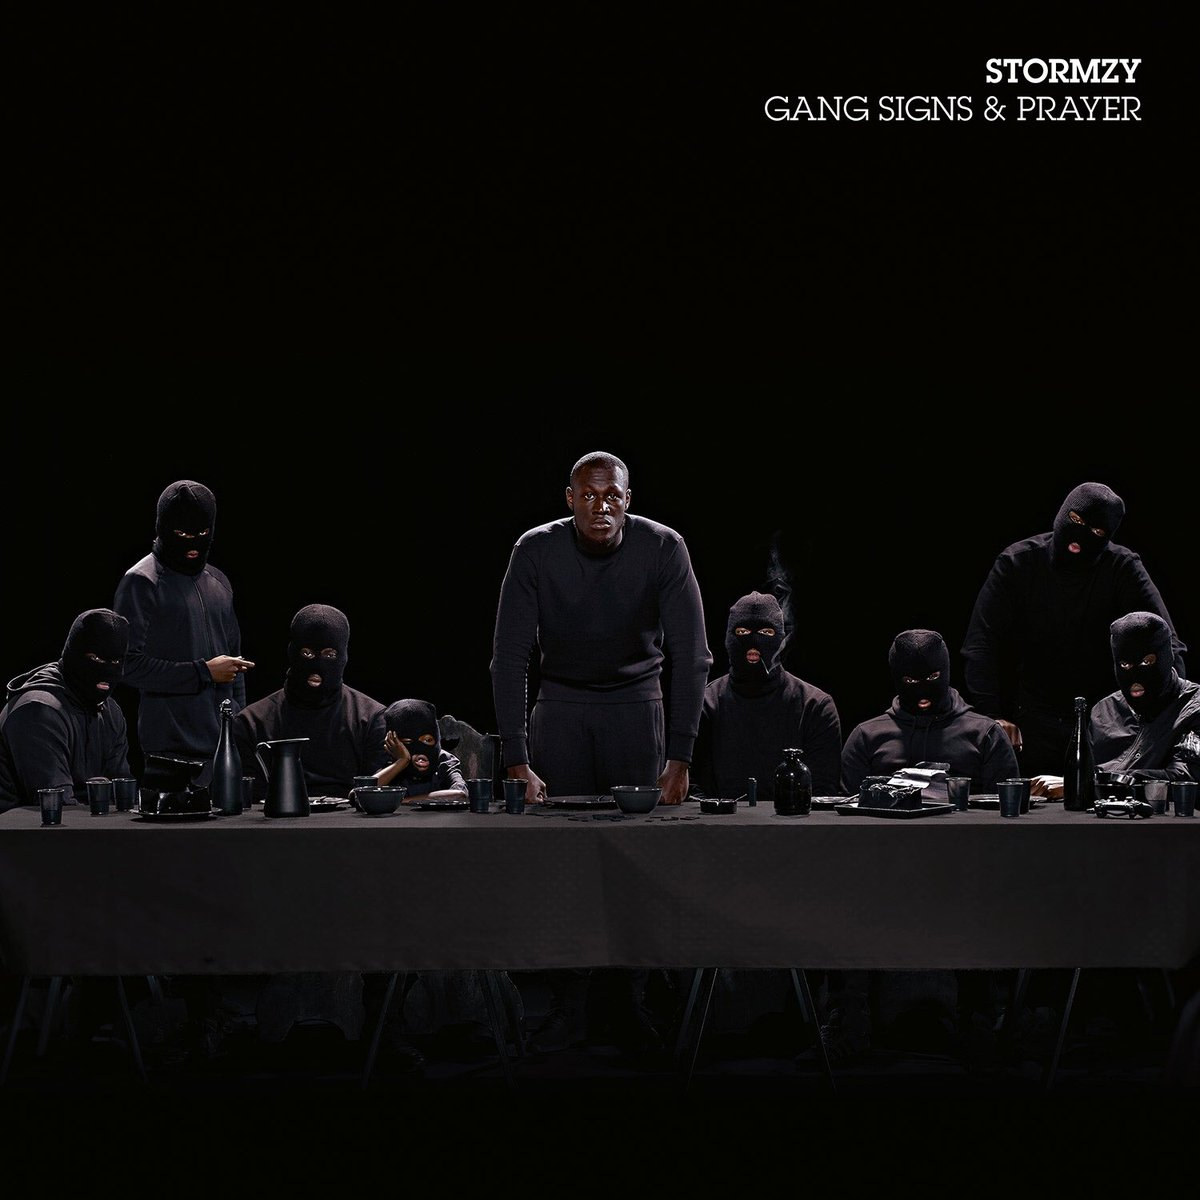 This fine young man's album is out today. Good luck darling @Stormzy1  👑 https://t.co/sTDl891lDl https://t.co/HLz9aUOjRT